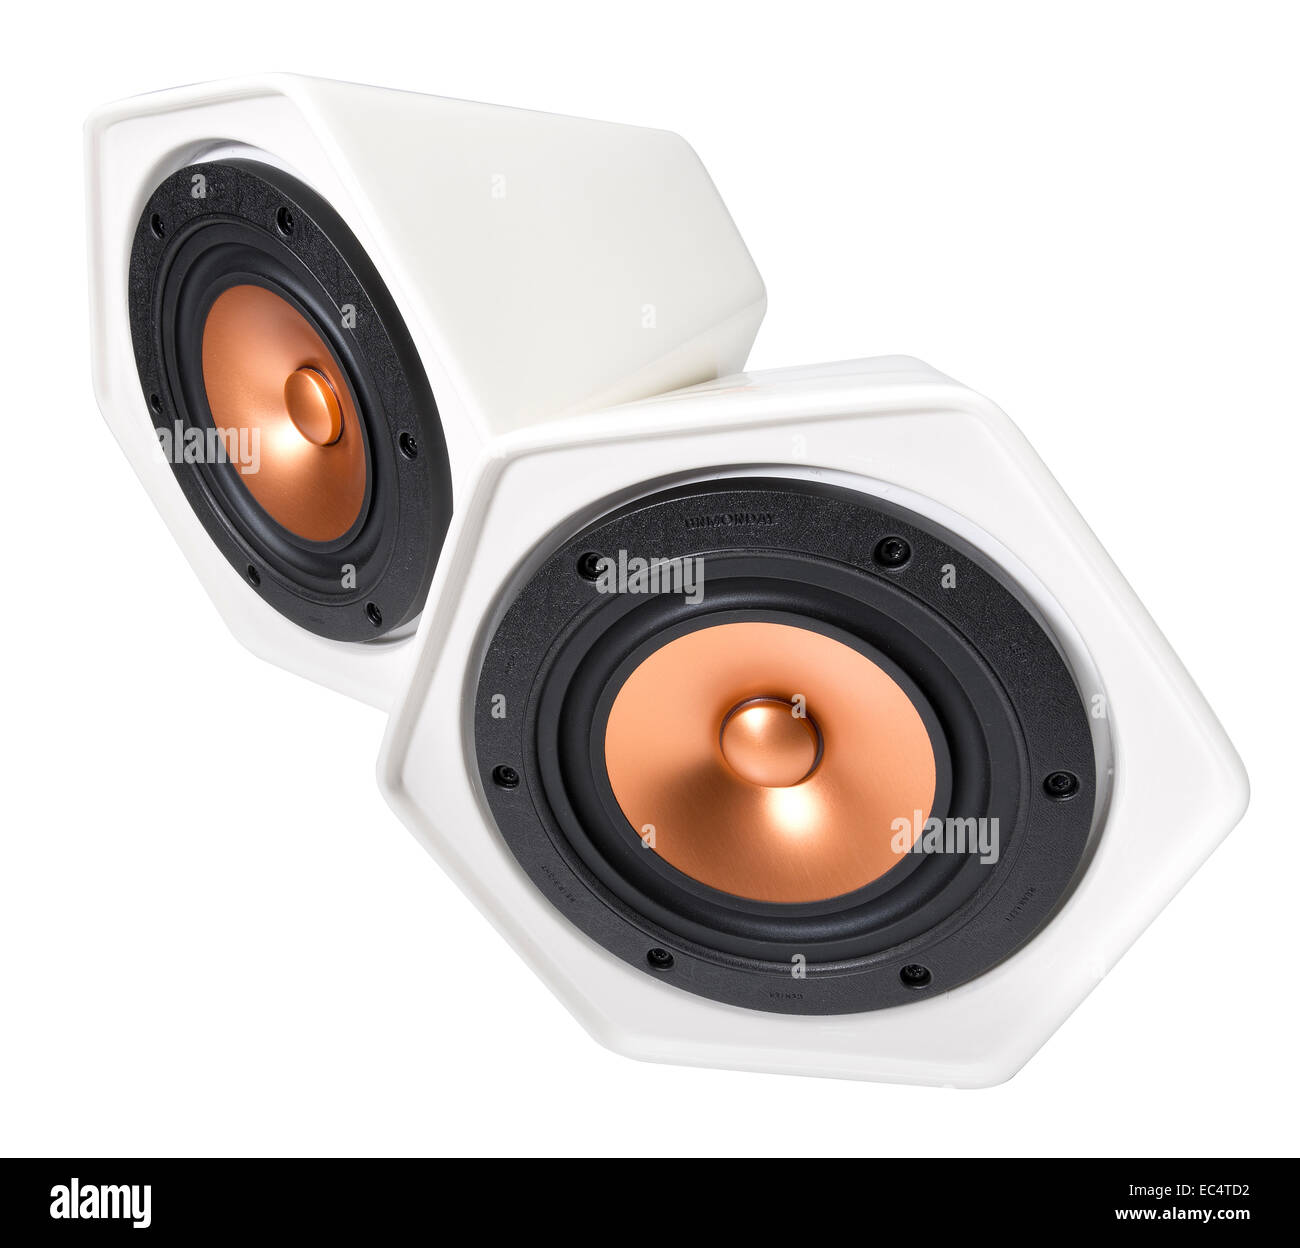 Unmonday wireless portable speakers. Apple airplay compatible. Streams audio to vitro porcelain ceramic speaker. - Stock Image